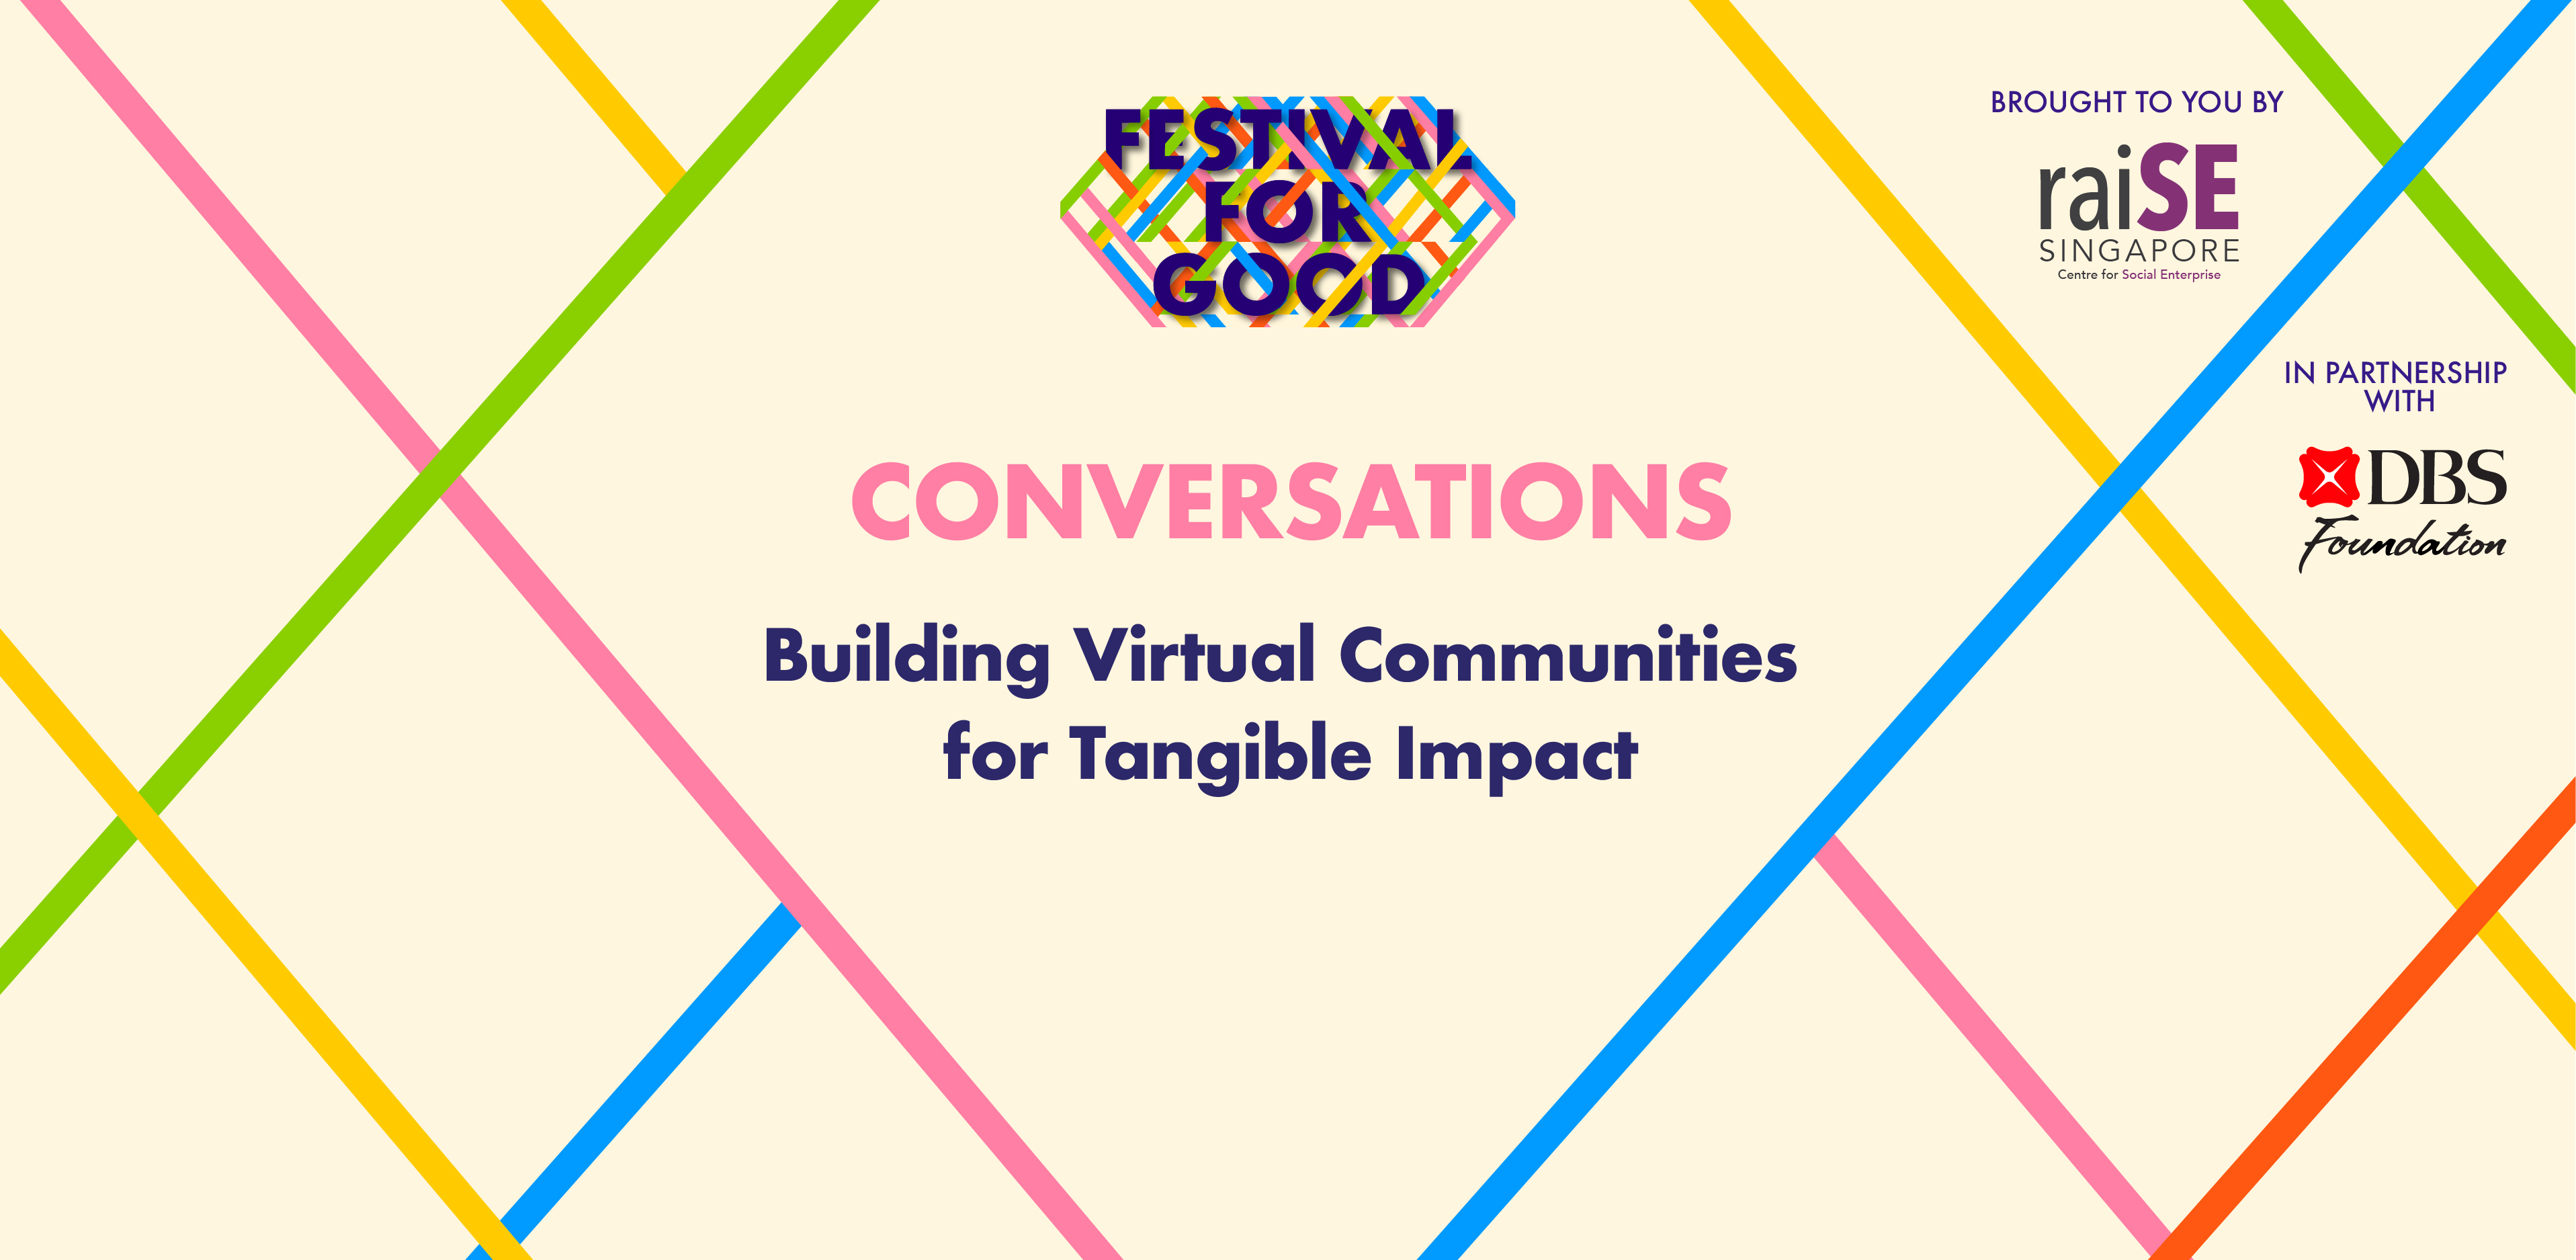 building-virtual-communities-for-tangible-impact_0_59862600_1603115351 Events